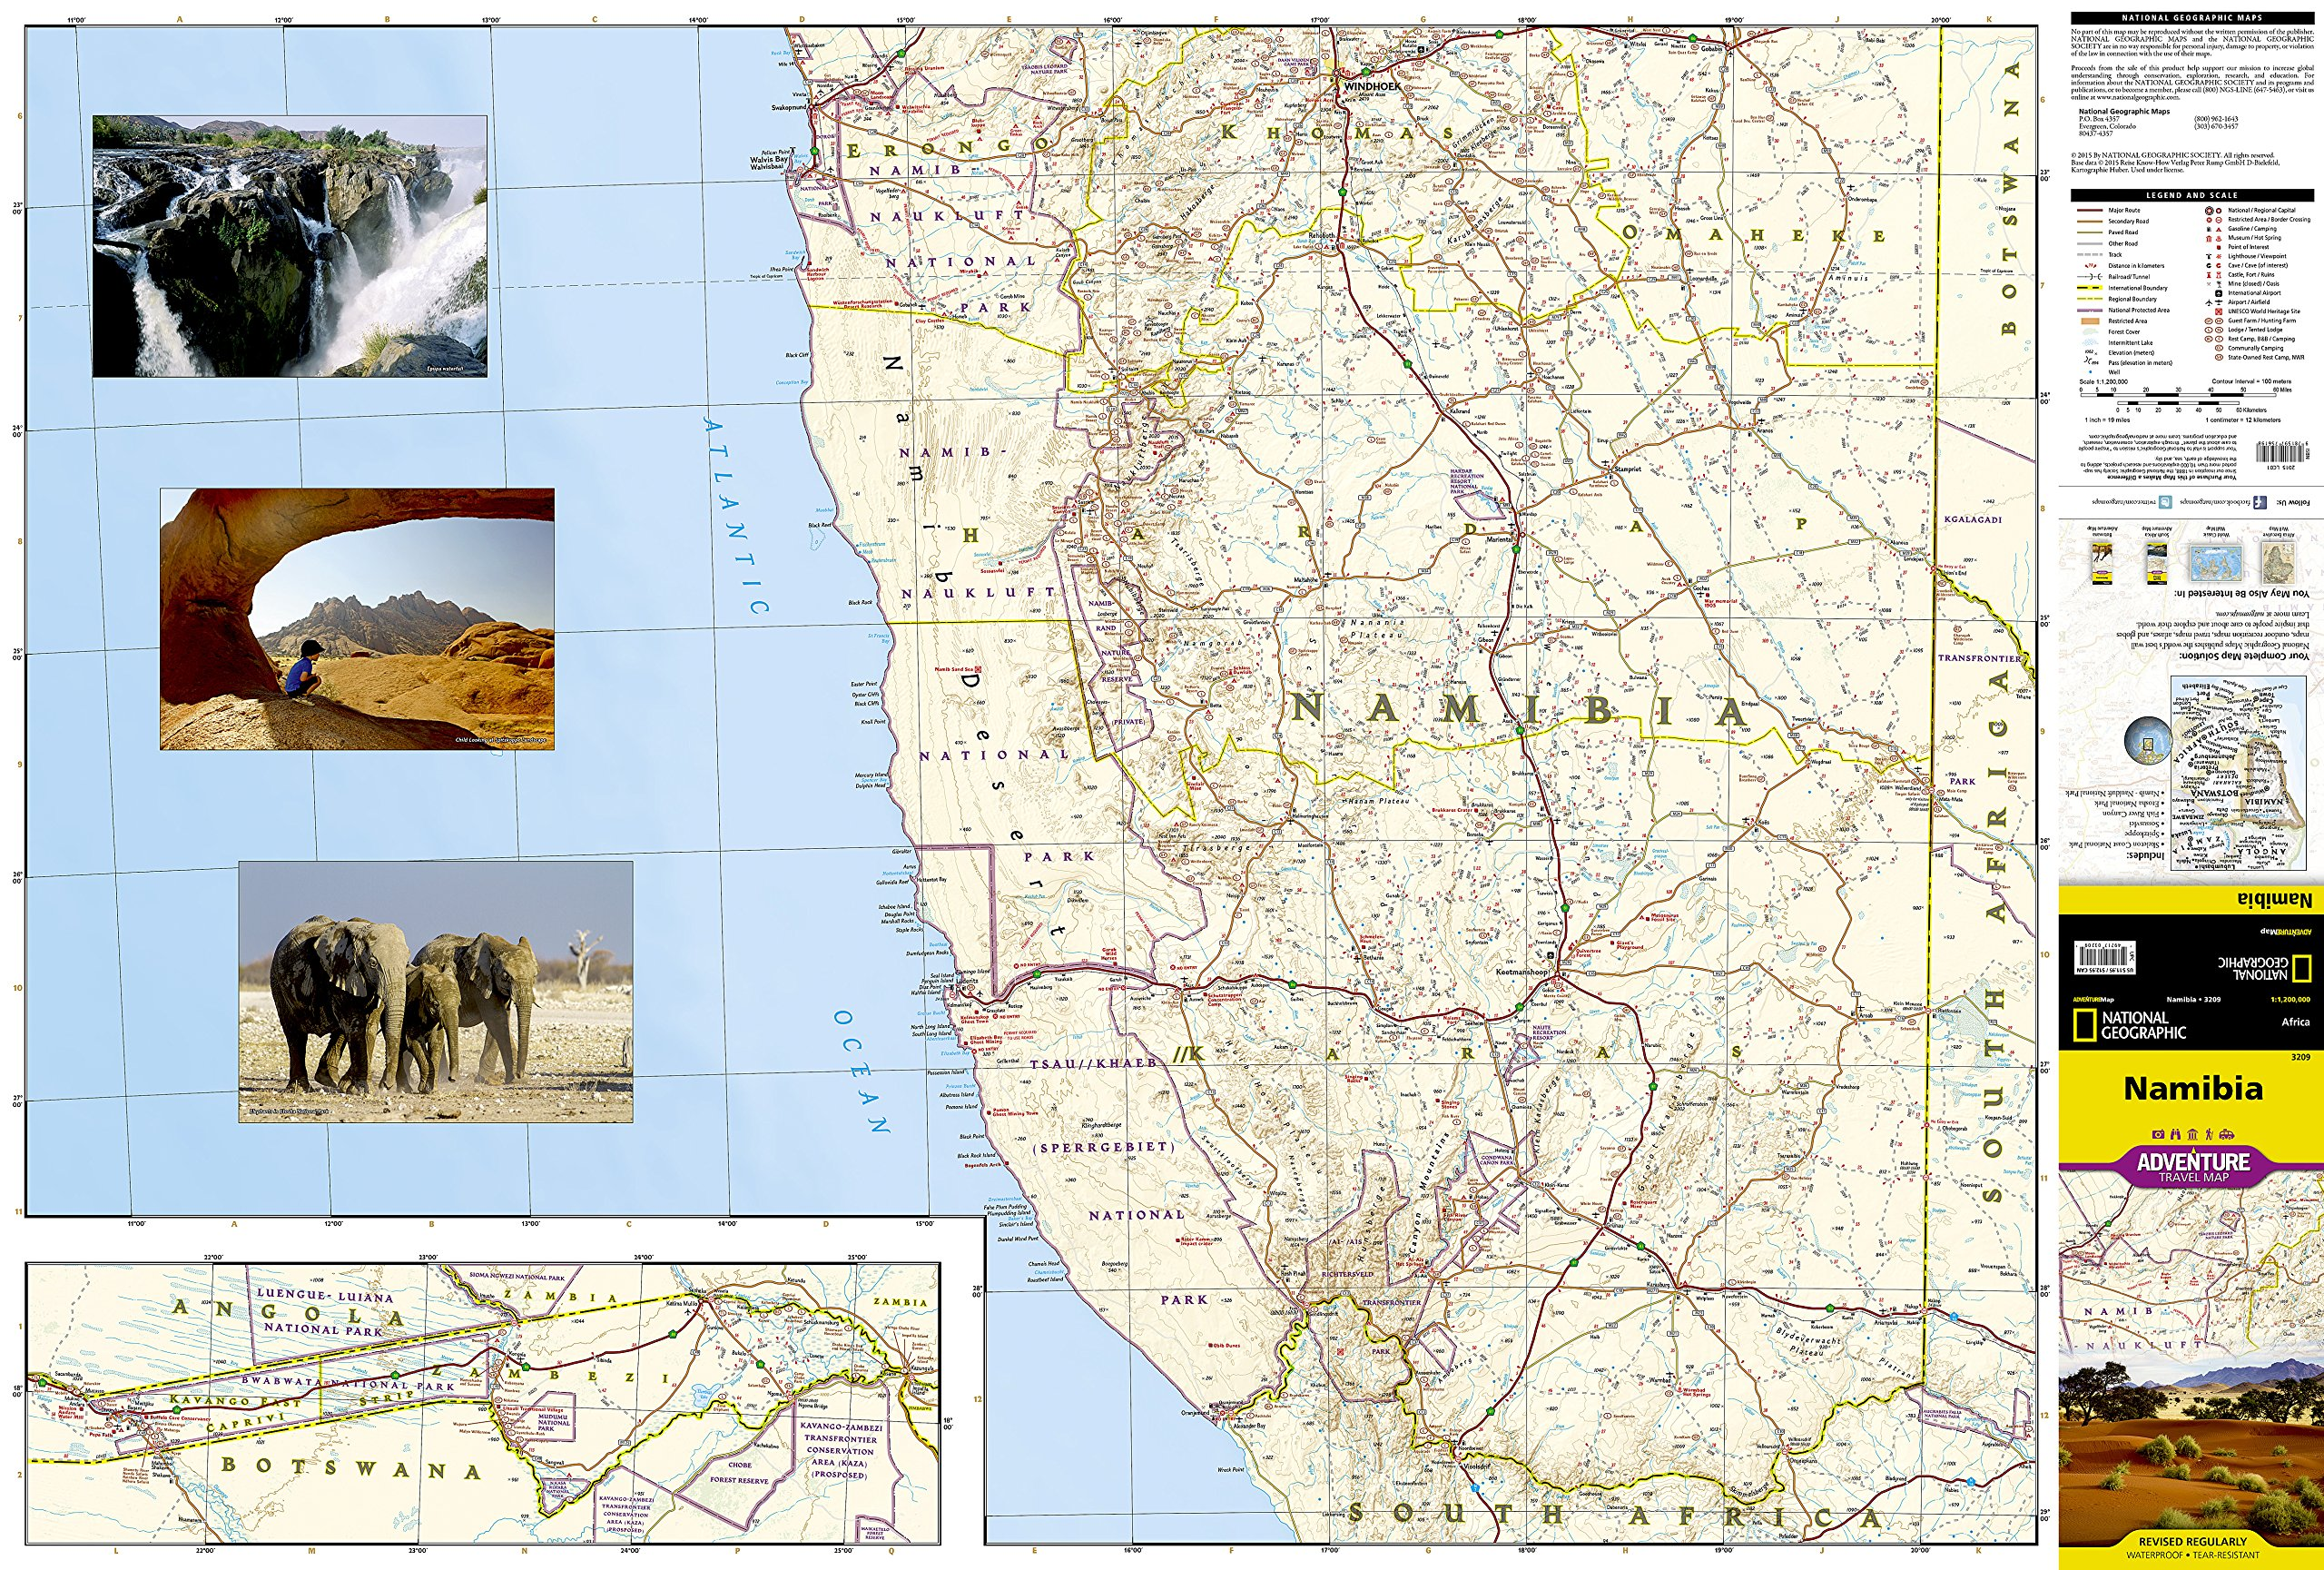 Namibia National Geographic Adventure Map National Geographic